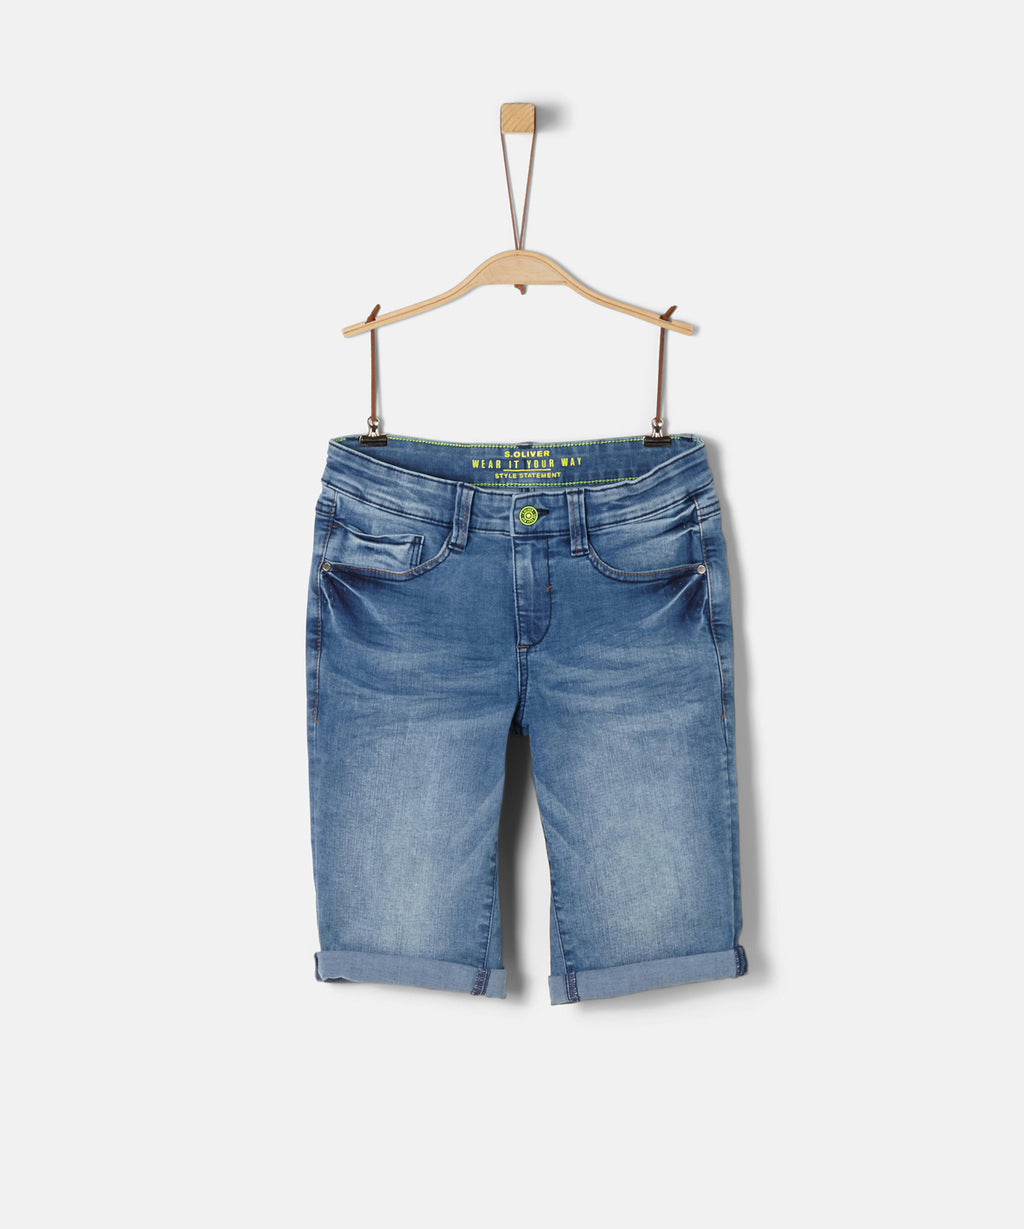 S.OLIVER BOY BERMUDA DENIM SHORTS REG.